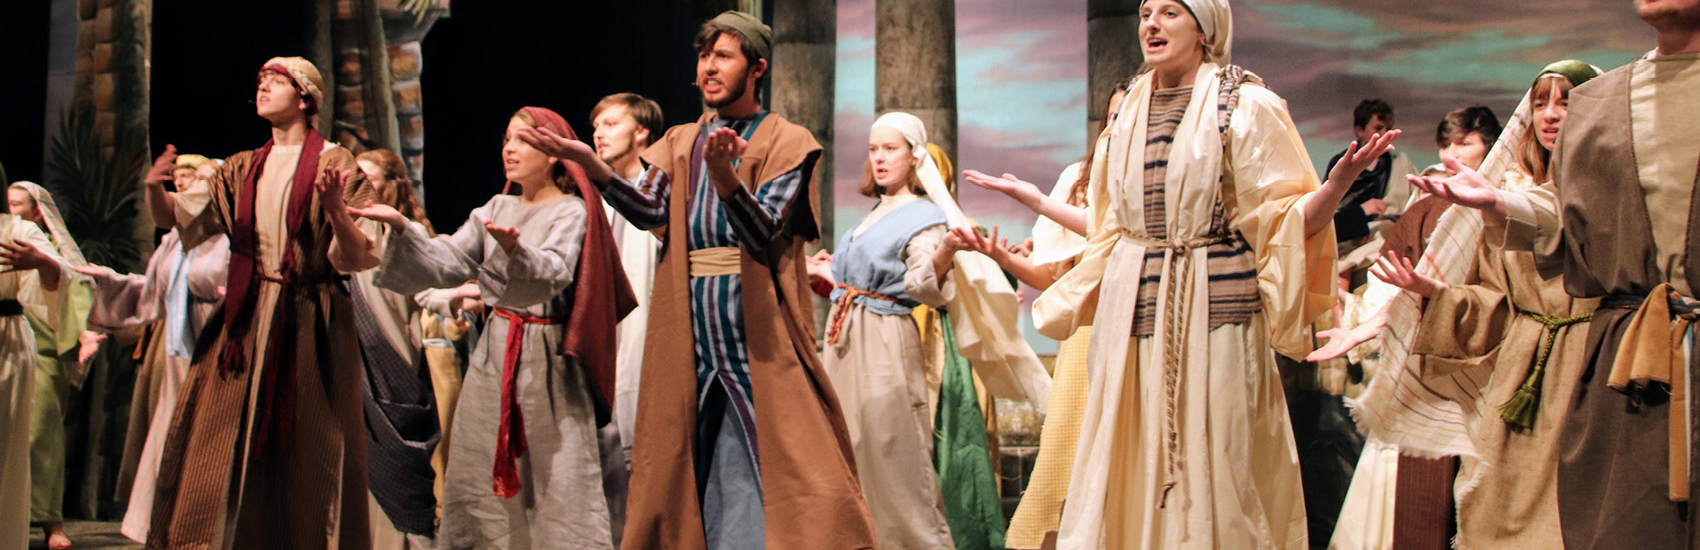 students dancing in theatre production